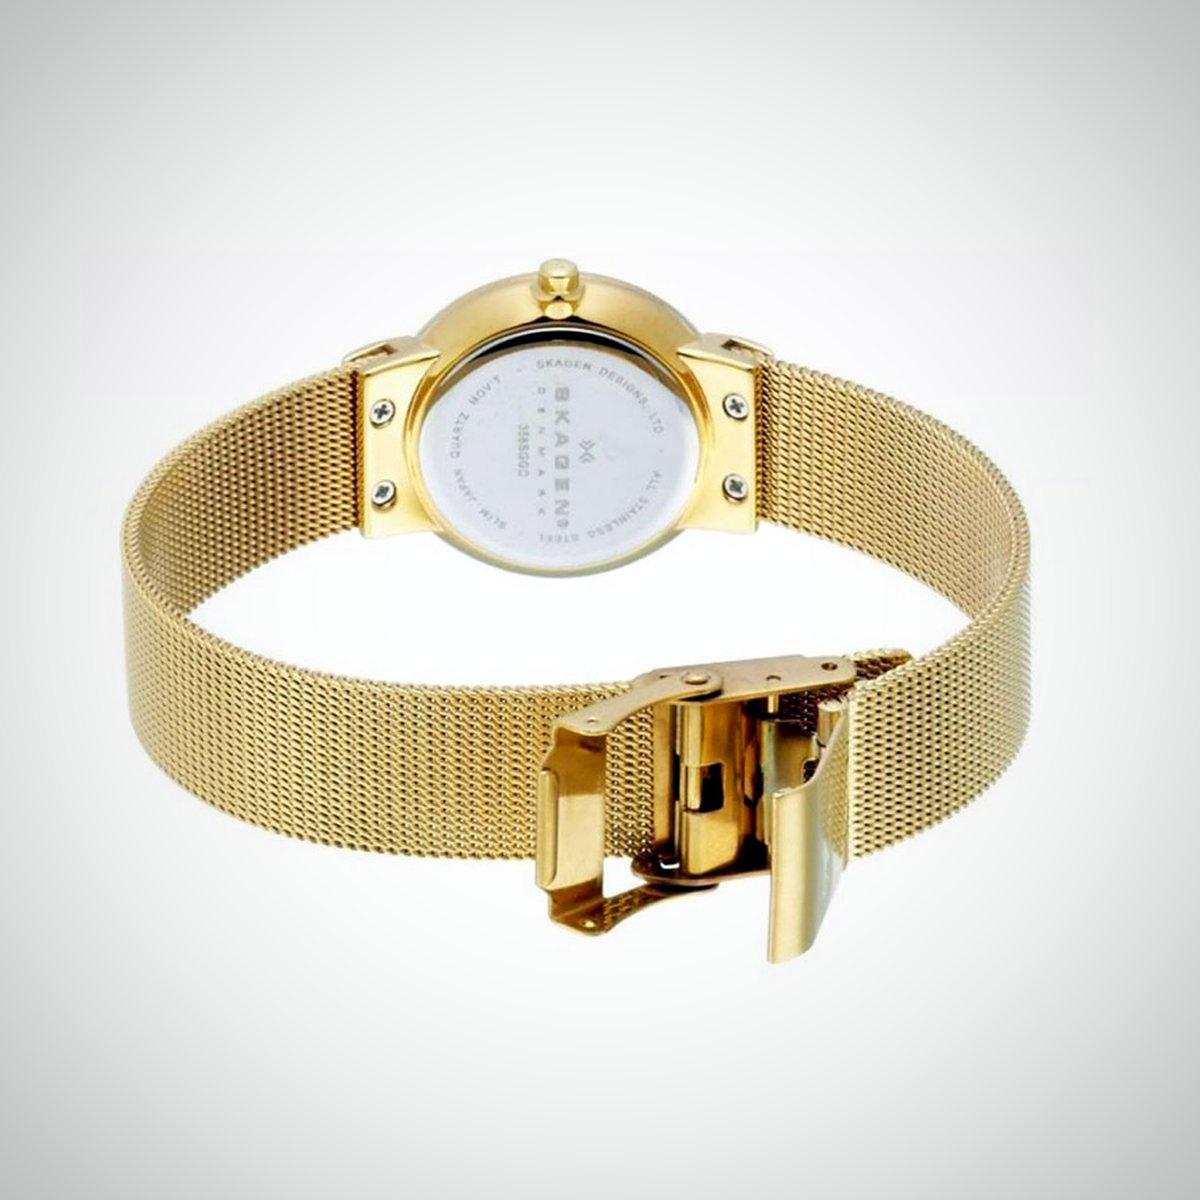 Skagen 358SGGD Women's PVD Gold Plated Case Gold Strap Silver Dial Watch